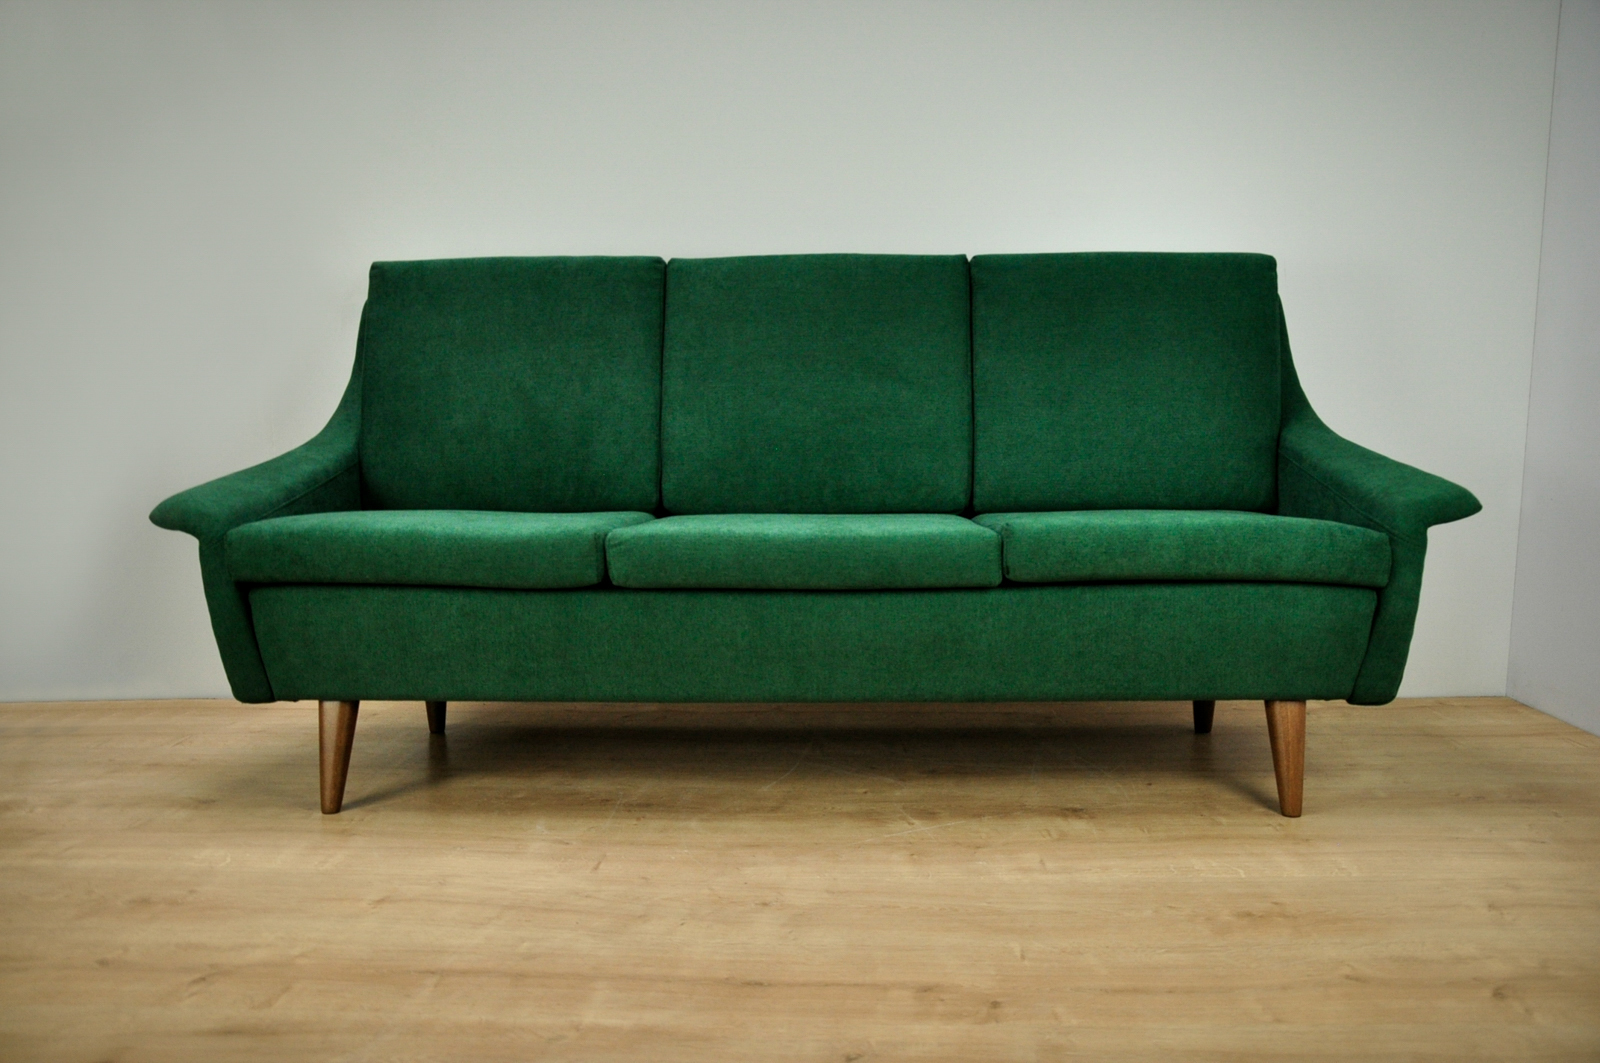 Groovy Vintage 3 Seater Sofa By Folke Ohlsson For Dux Free Delivery To London And Surrounding Cjindustries Chair Design For Home Cjindustriesco